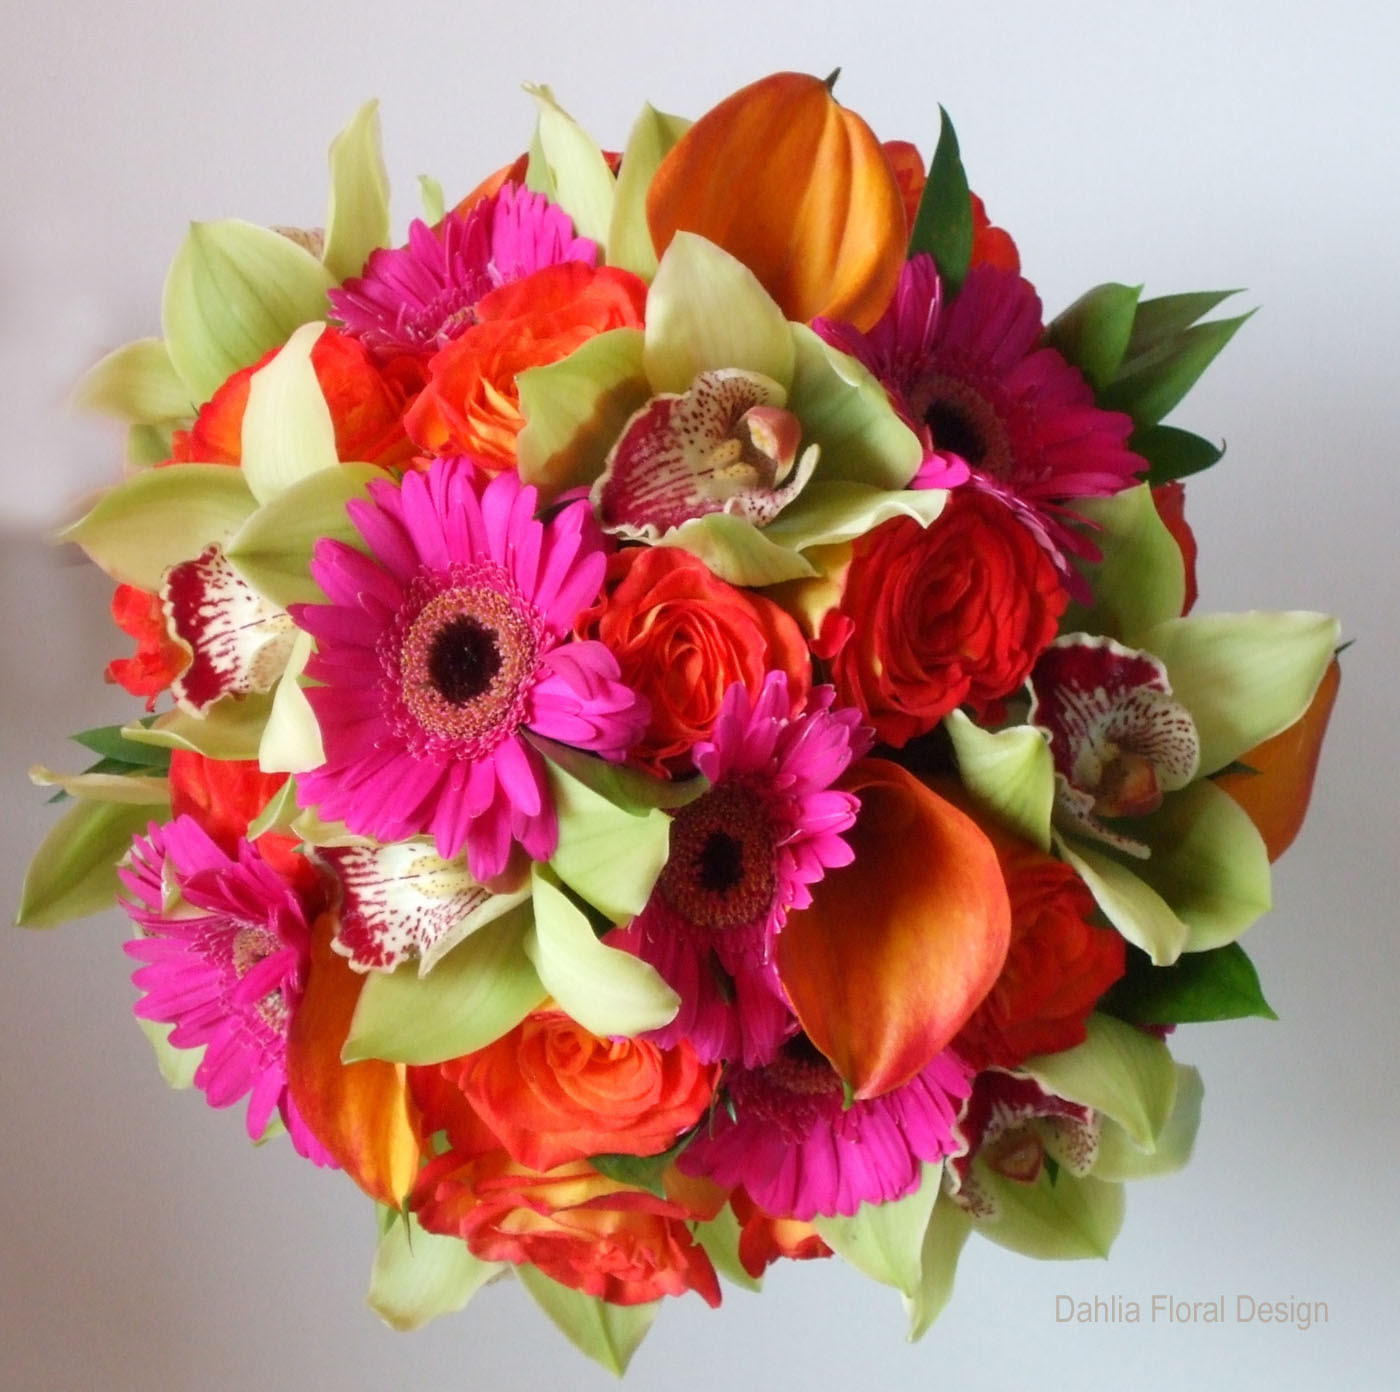 Fusion Mixed Colored Bouquets Dahlia Floral Design